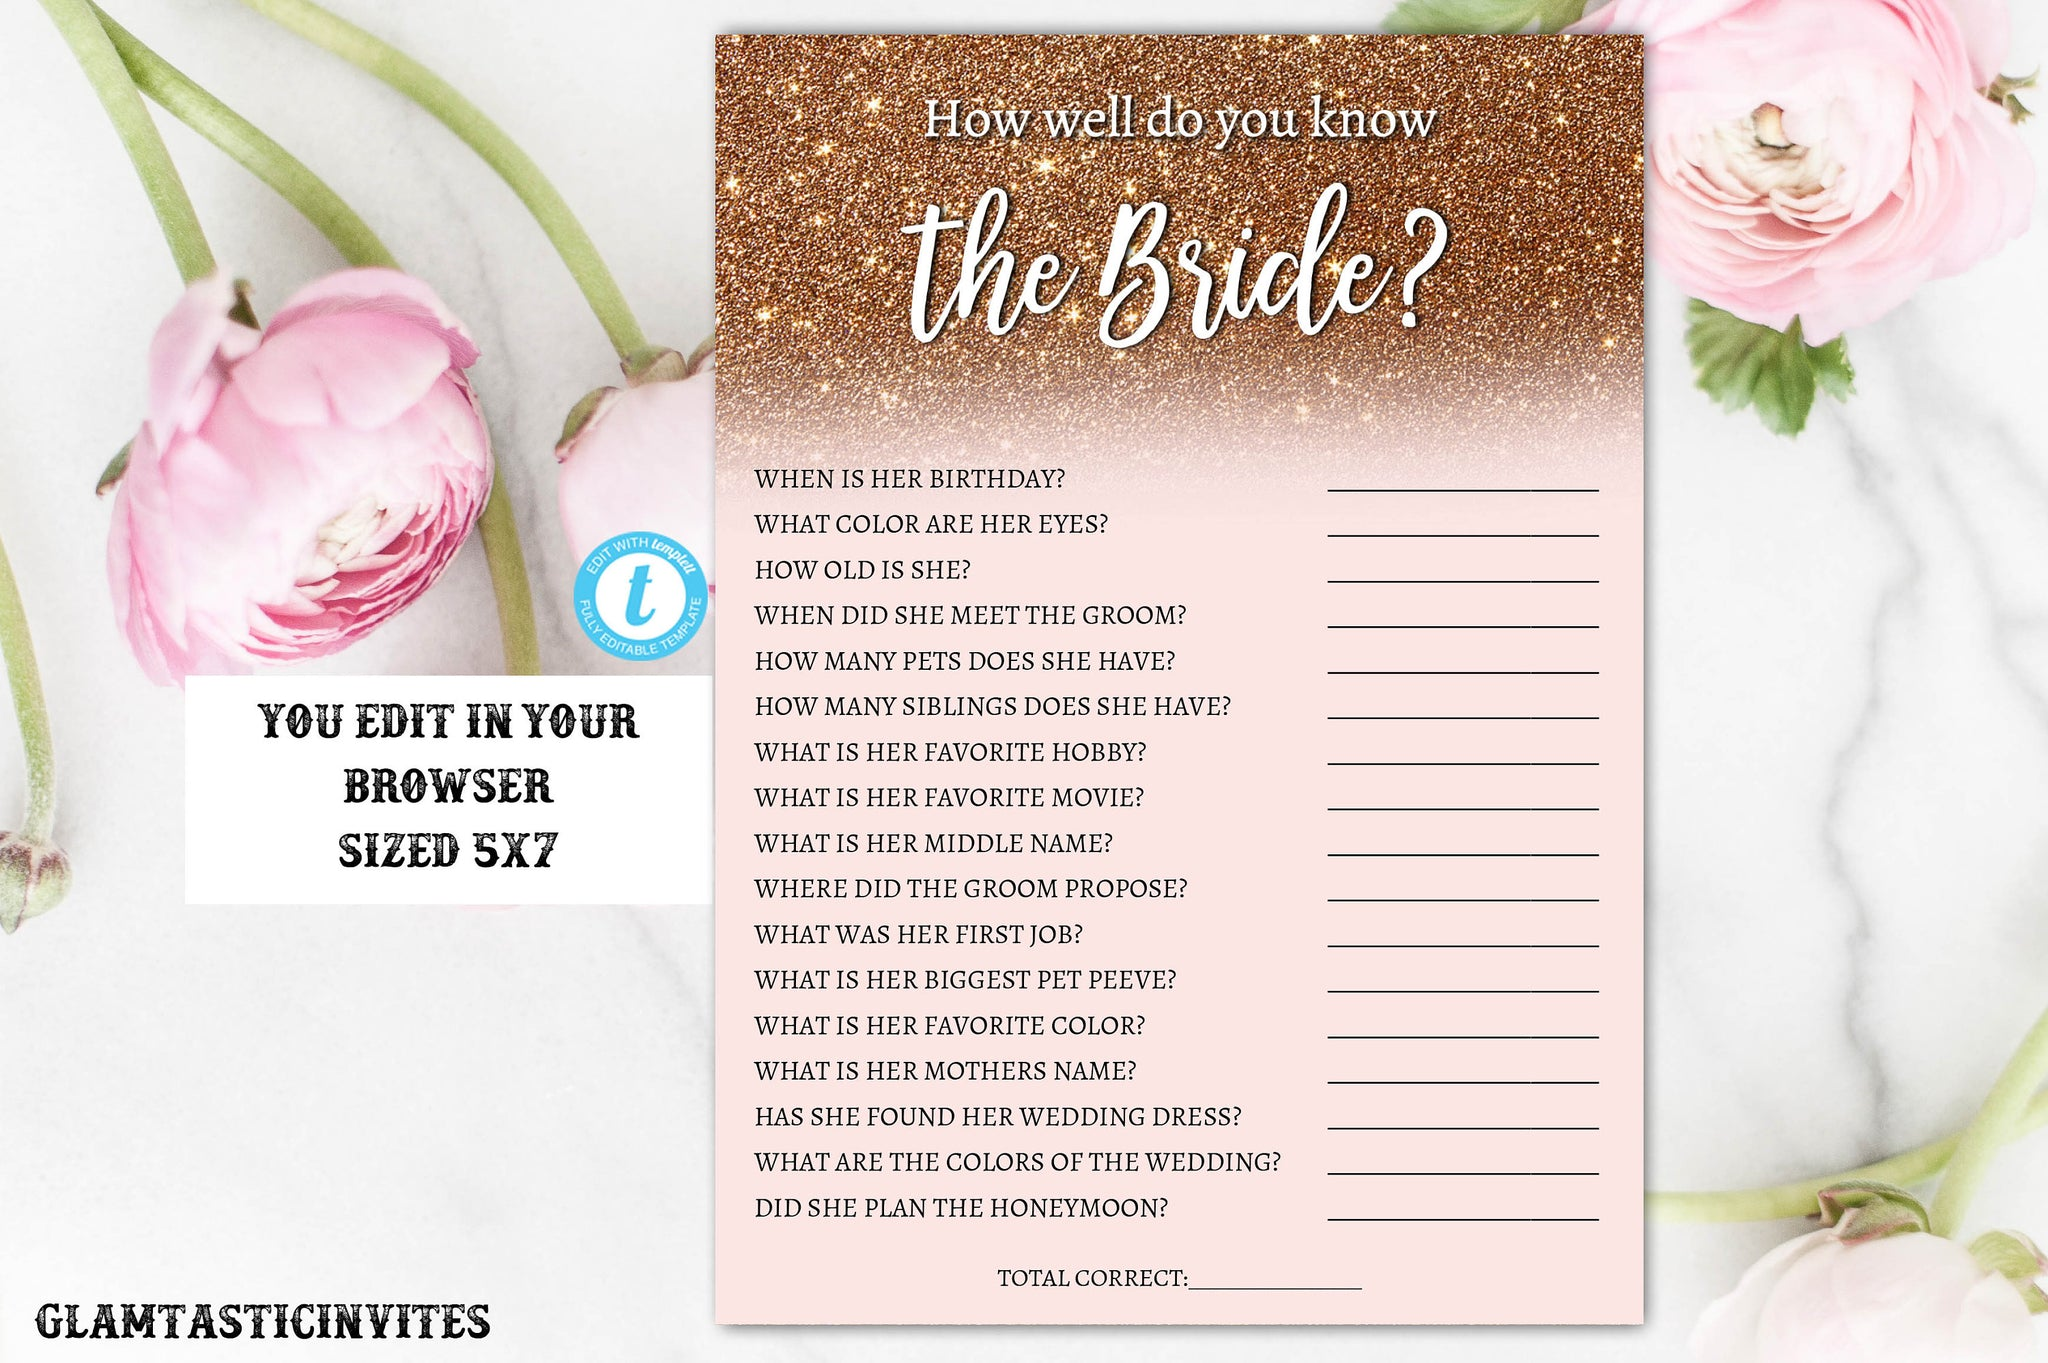 Rose Gold How Well Do You Know the Bridal Shower Game Template, DIY Bridal Shower, Bridal Shower Game, Instant Download, Know the Bride Game